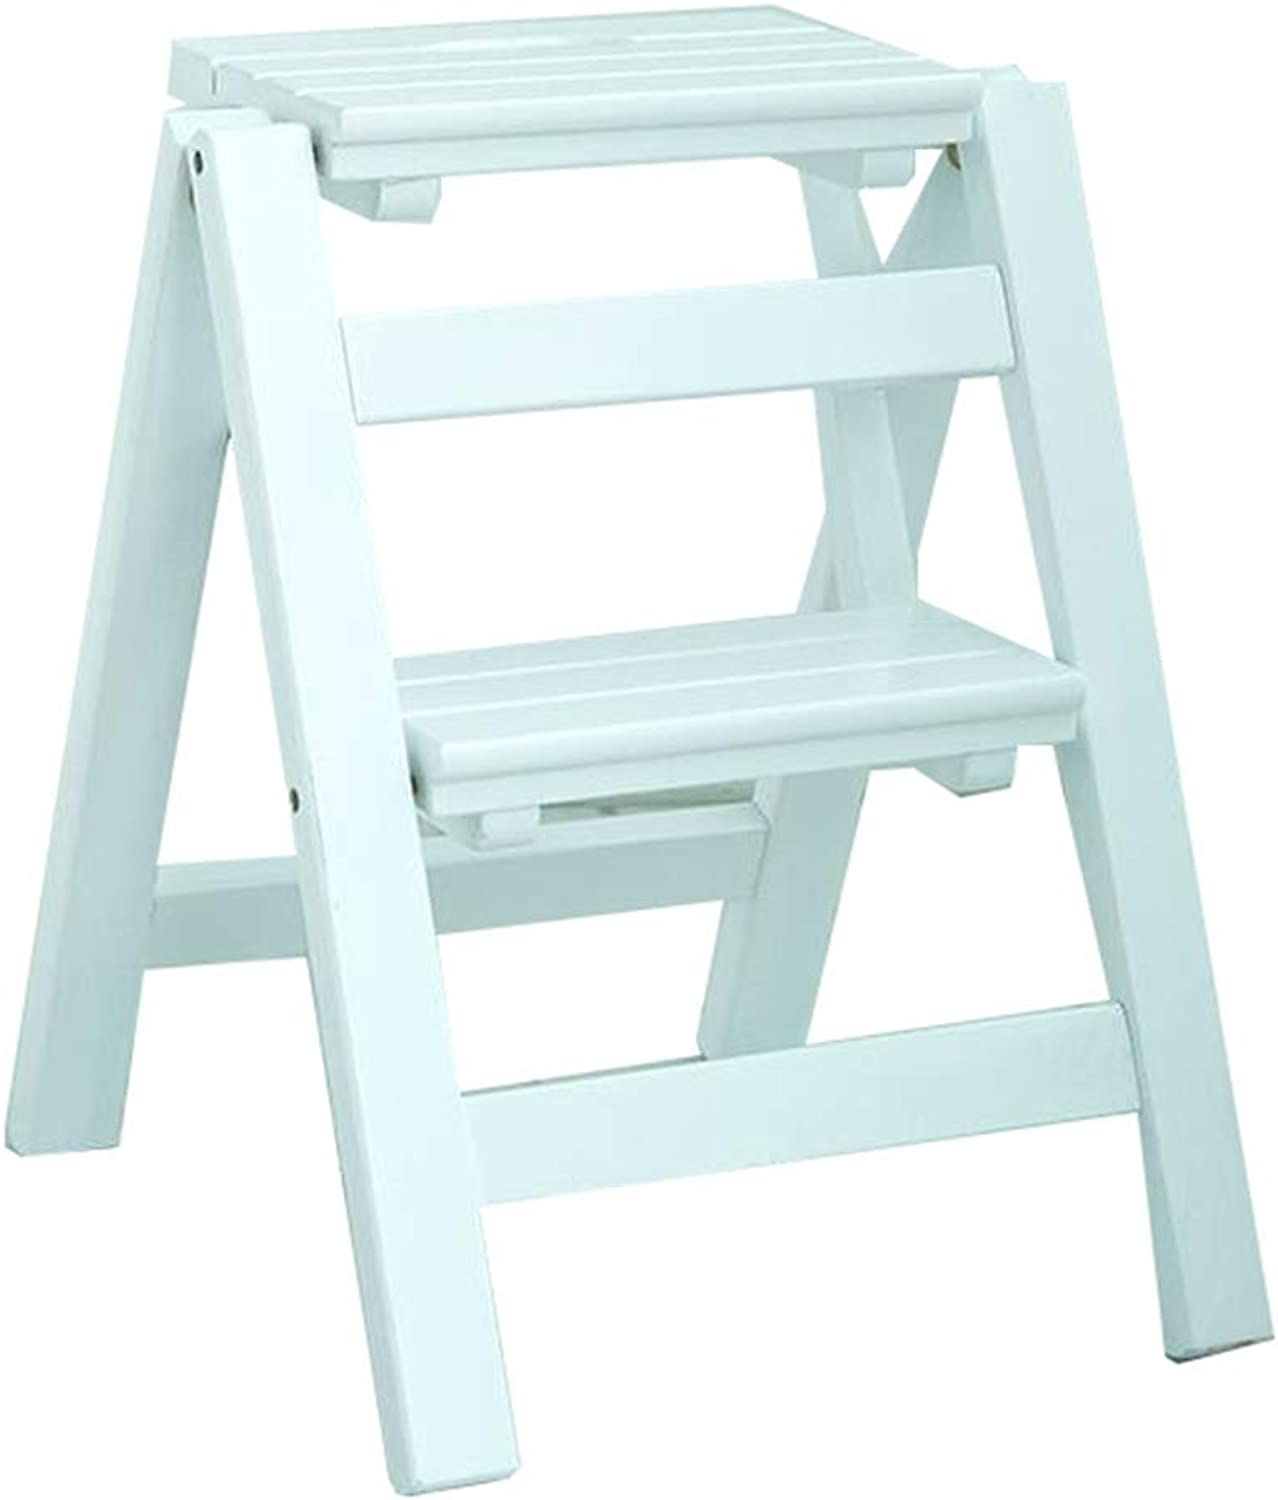 Portable Ladder Stool 2-Step Stools Easy to Store Foldable Design Ideal for Home Kitchen Garage (38 × 46 × 50 cm) (color   White)